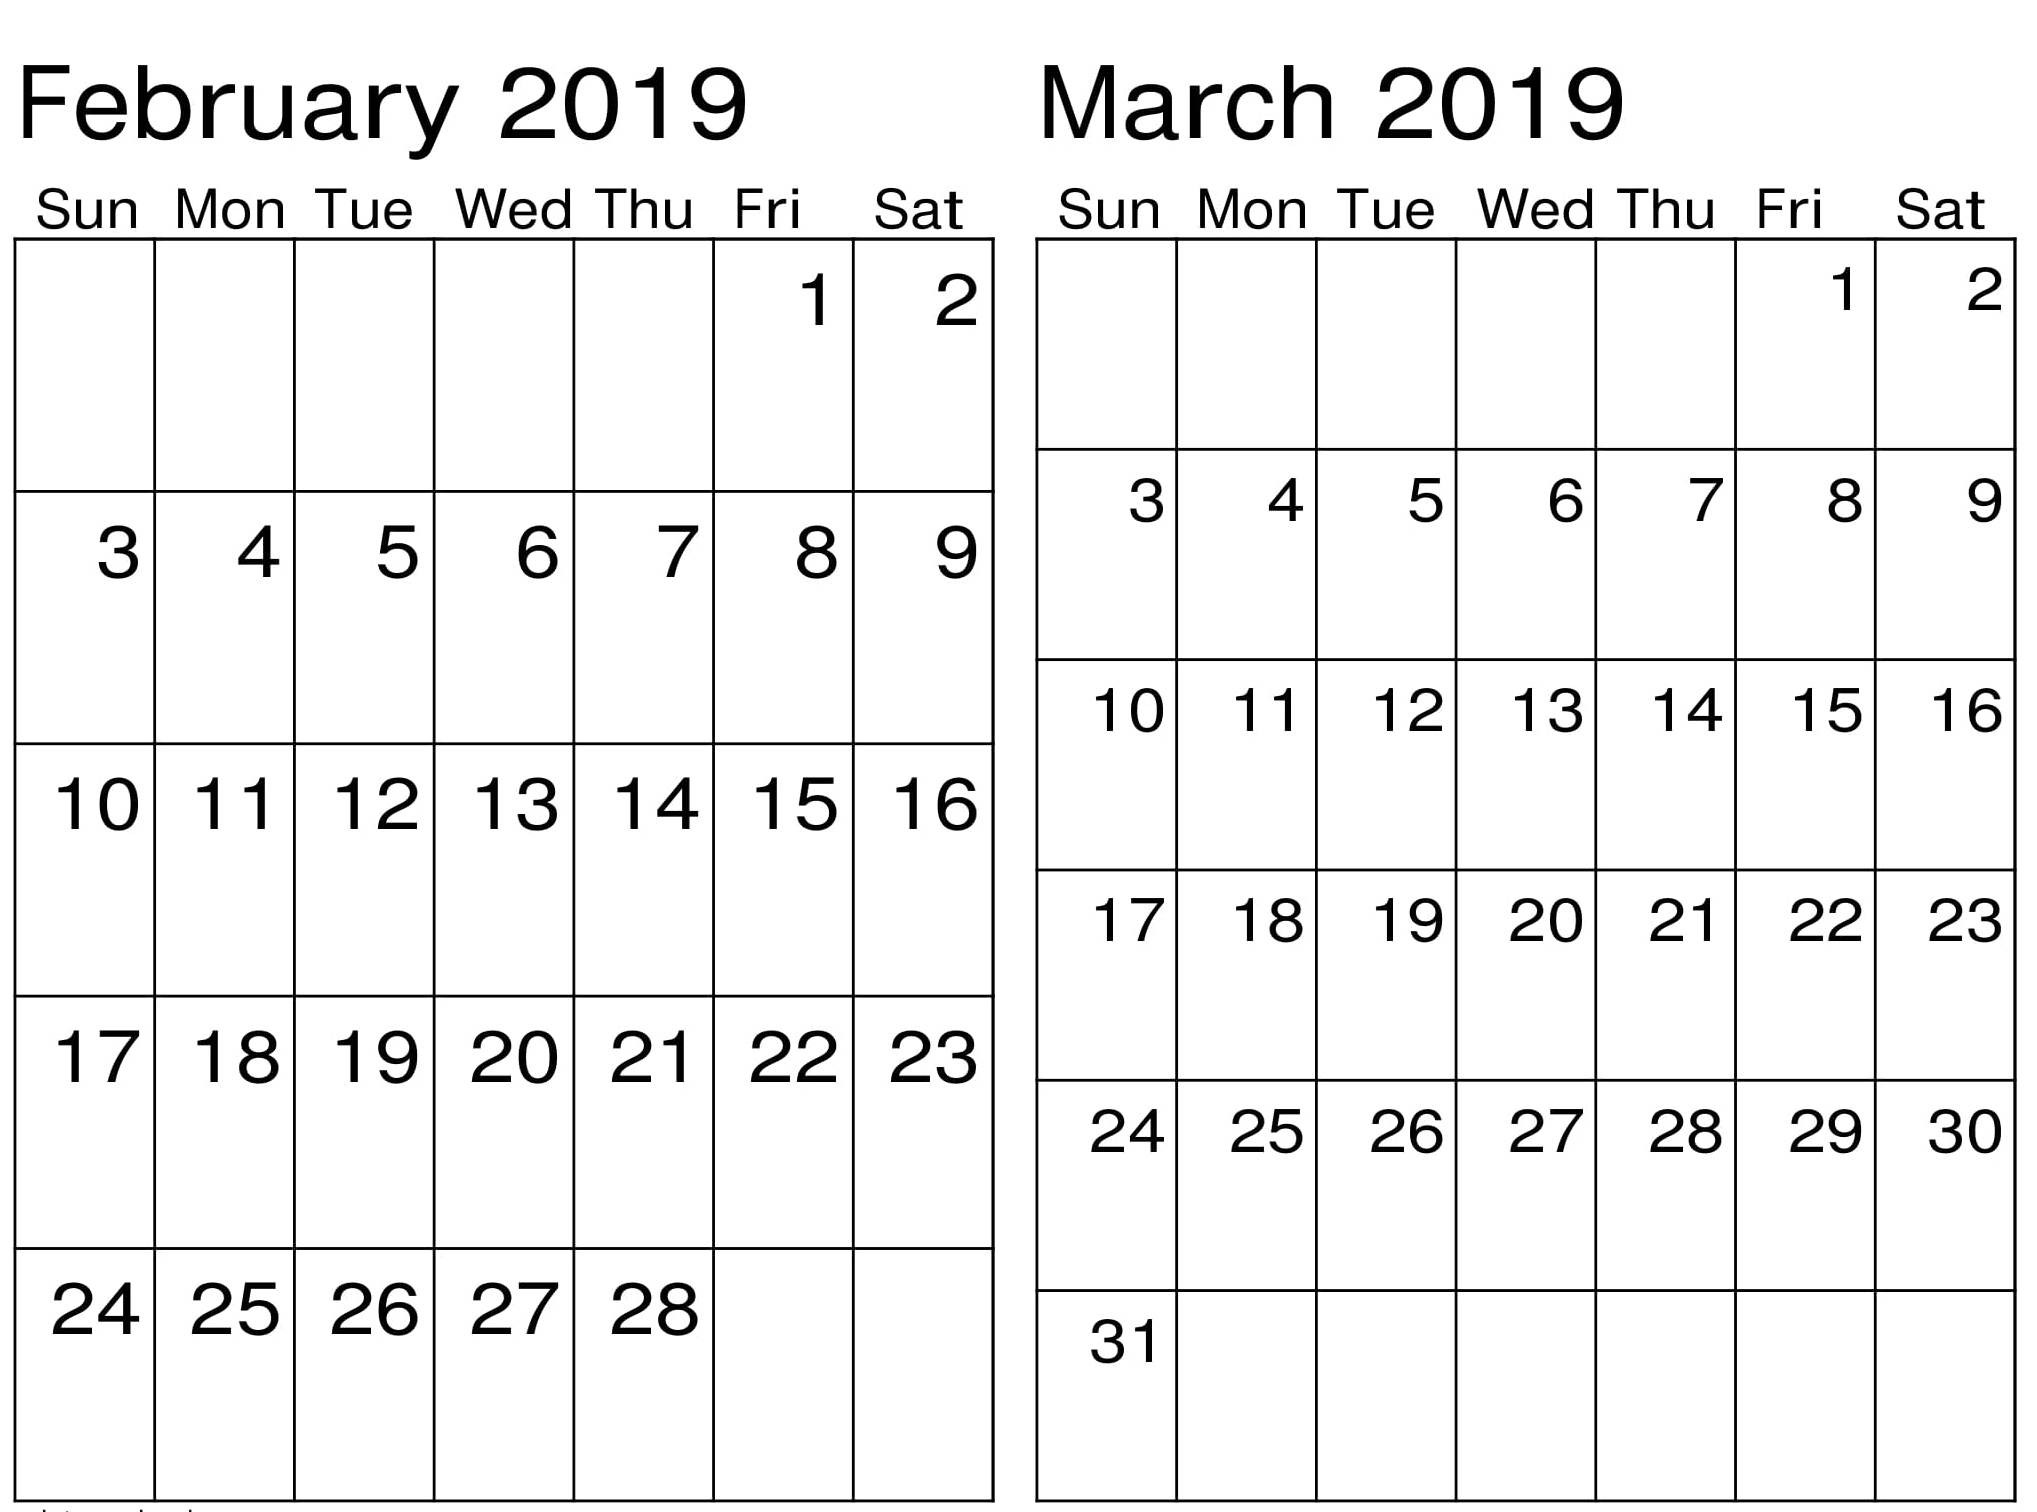 March 2019 Calendar Landscape Actual Tue February and March 2019 Calendar Of March 2019 Calendar Landscape Más Arriba-a-fecha Travel with the Lakeland Chamber the israel Adventure May 24